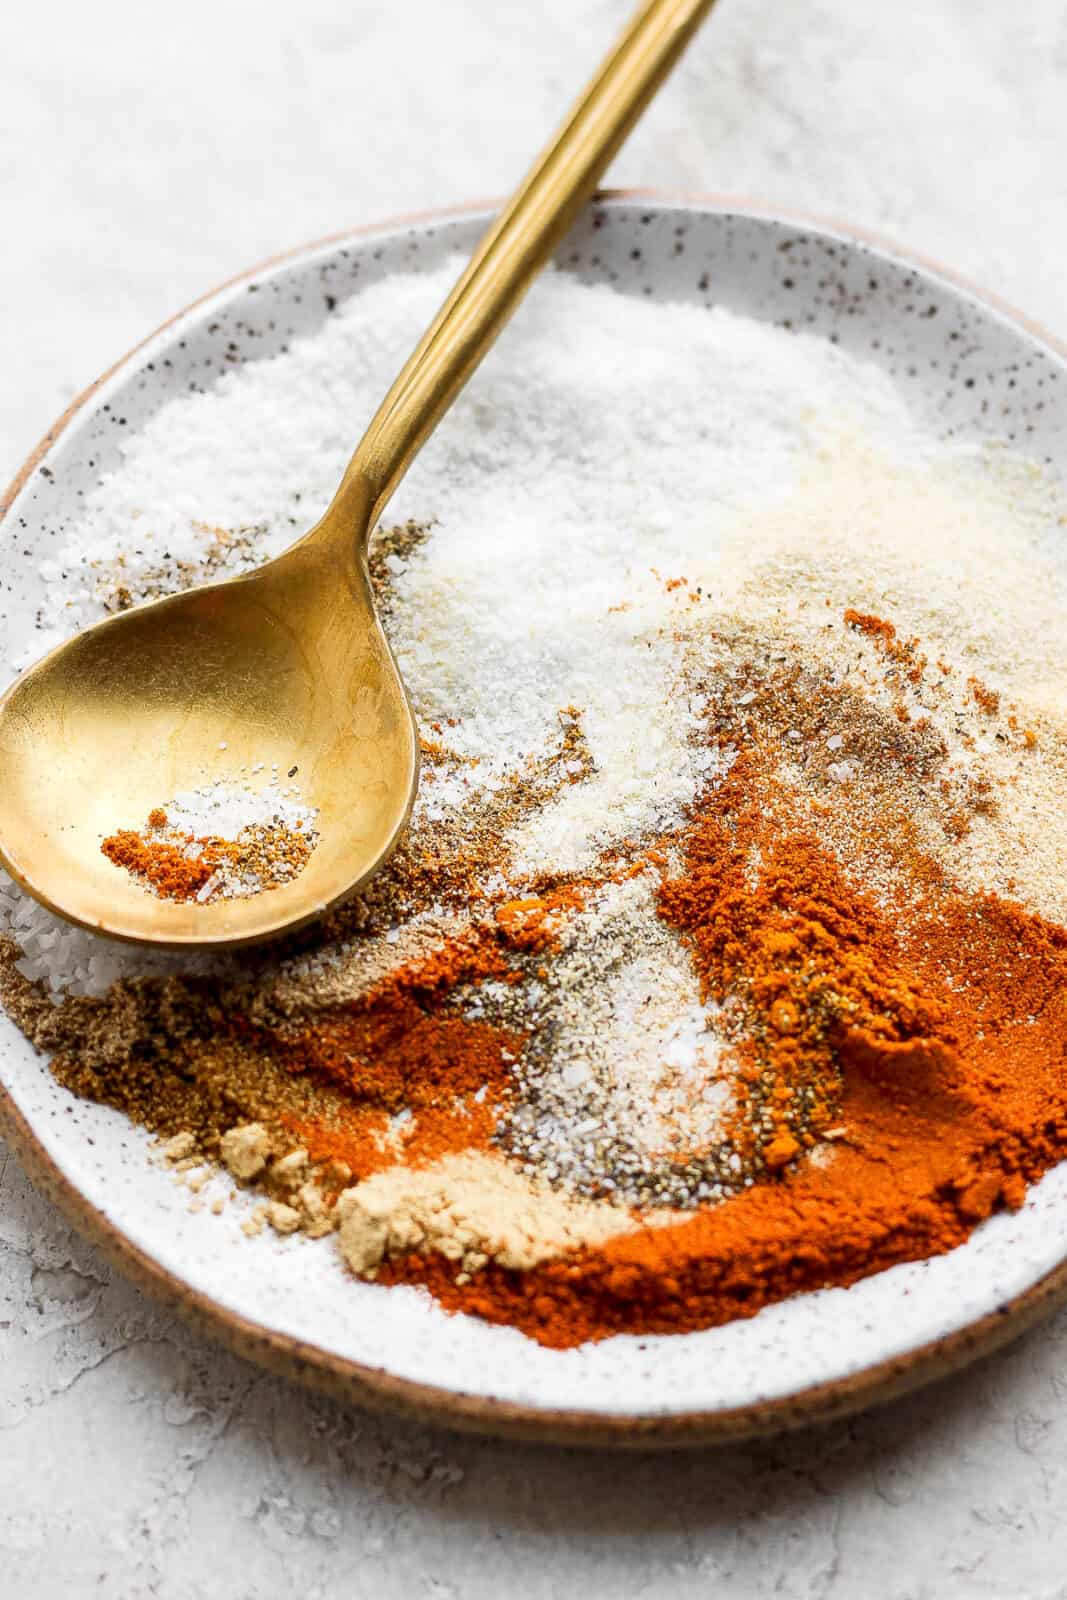 A speckled plate with all the different spices on it with a golden spoon.